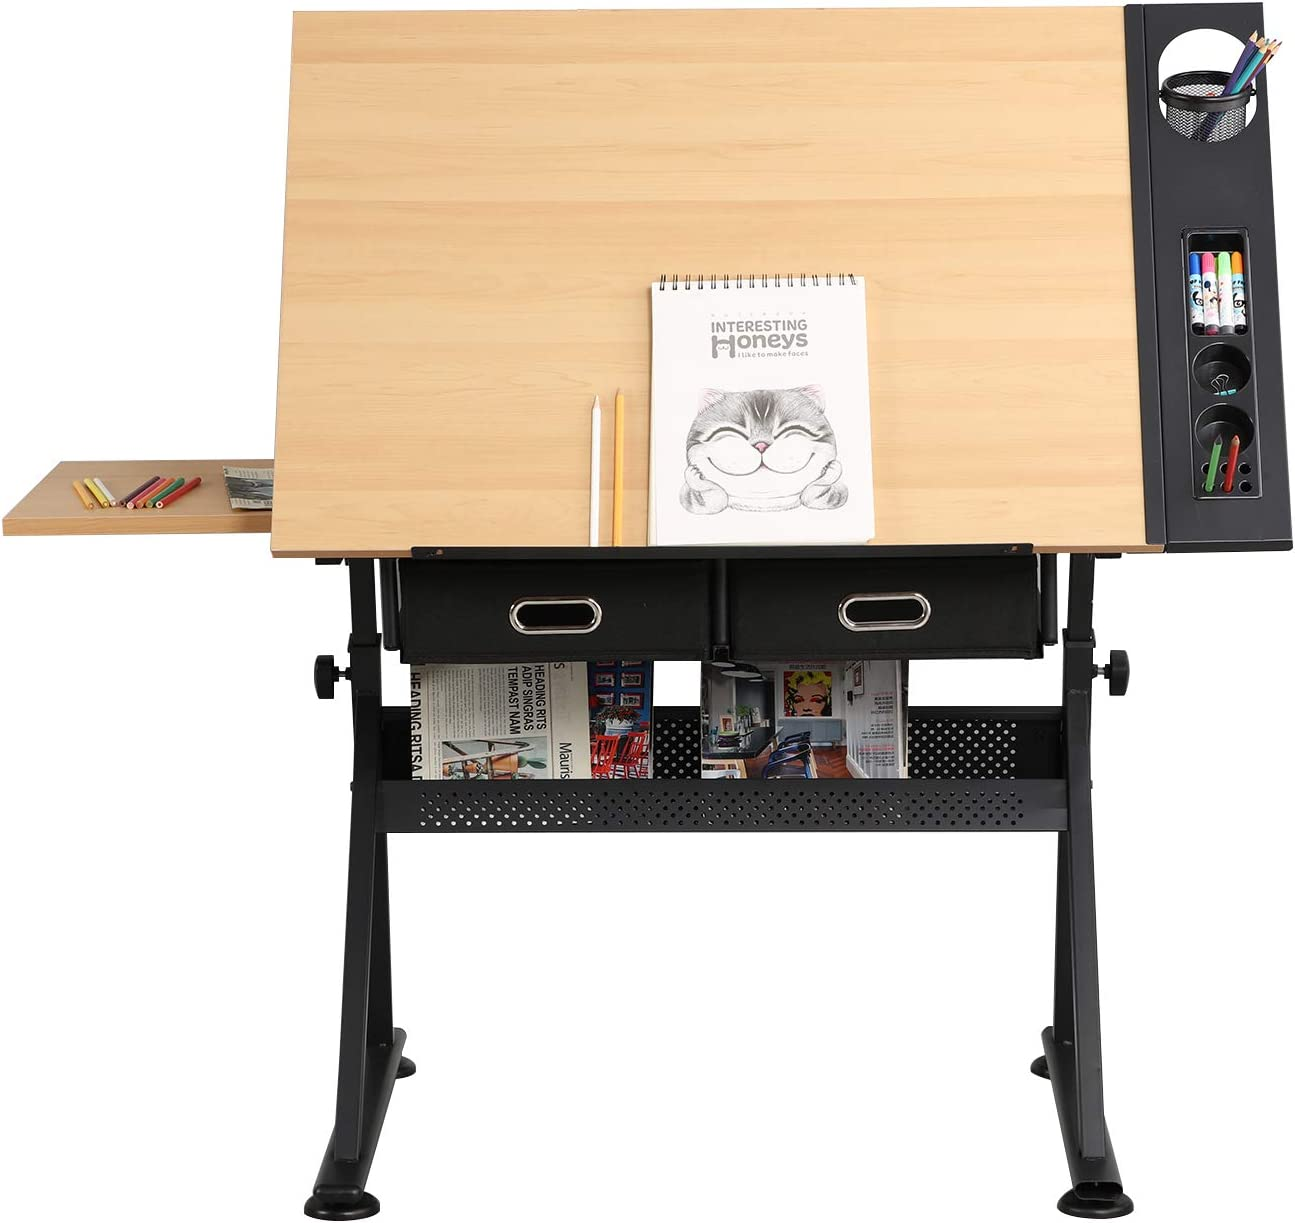 DlandHome Drafting Table Adjustable with a stool Craft Table Drawing Desk Hobby Table Writing Desk Studio Desk with Drawers Angle Adjustable Top